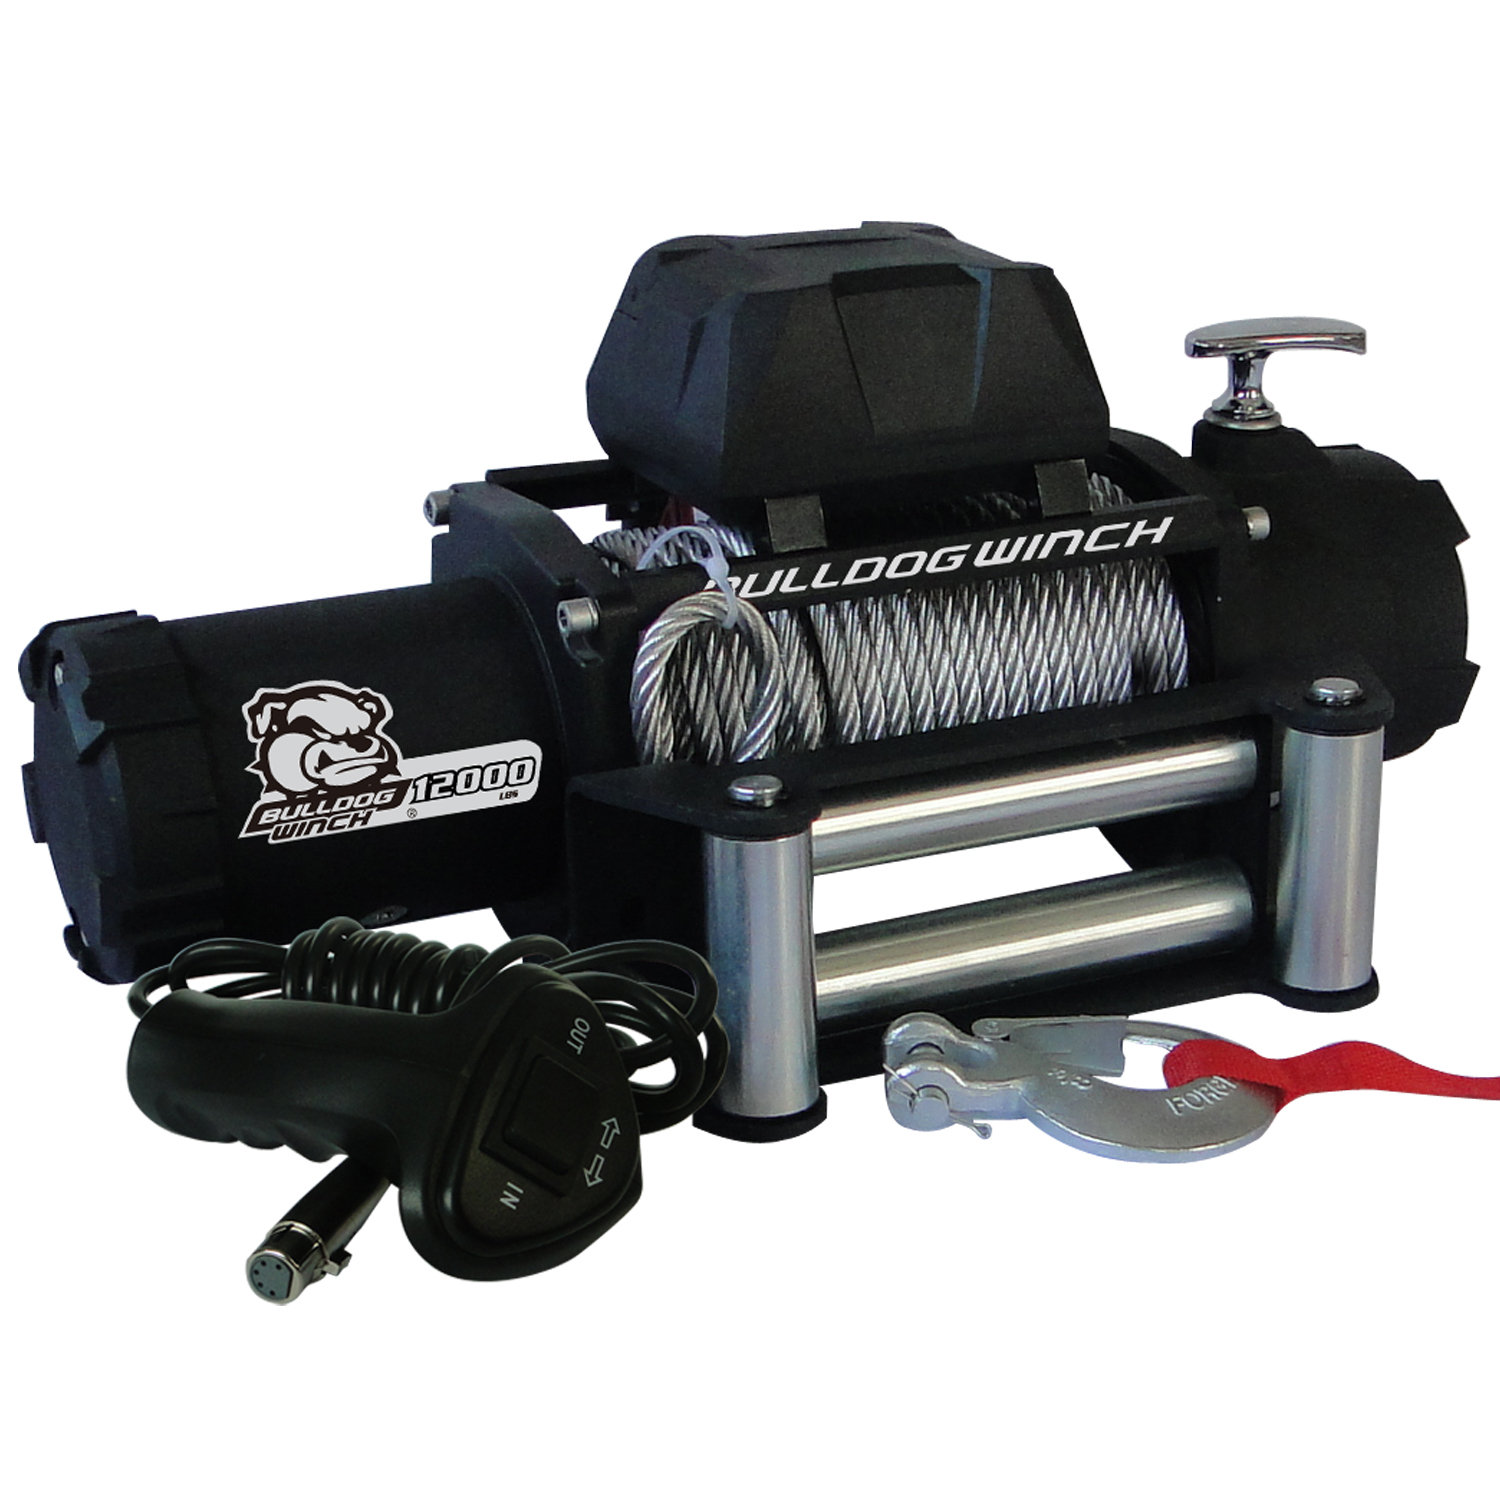 Bulldog Winch 12,000lb Winch w/ Wire Rope